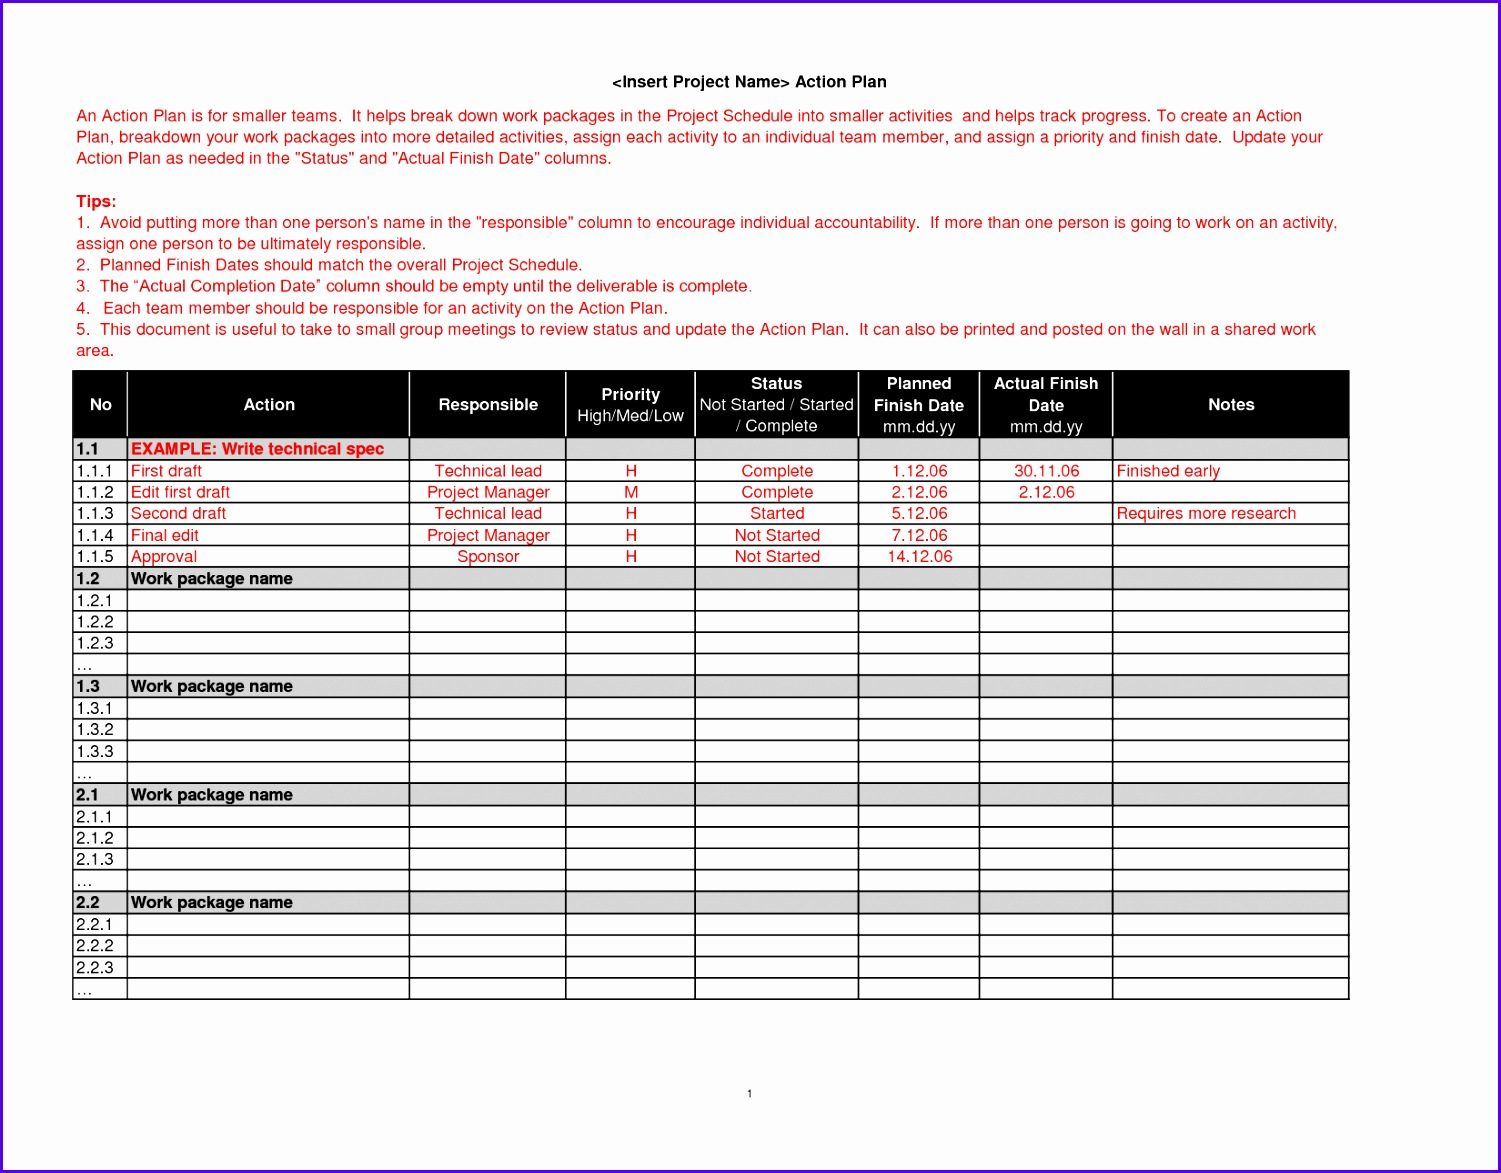 Project Action Plan Template Excel 15011173